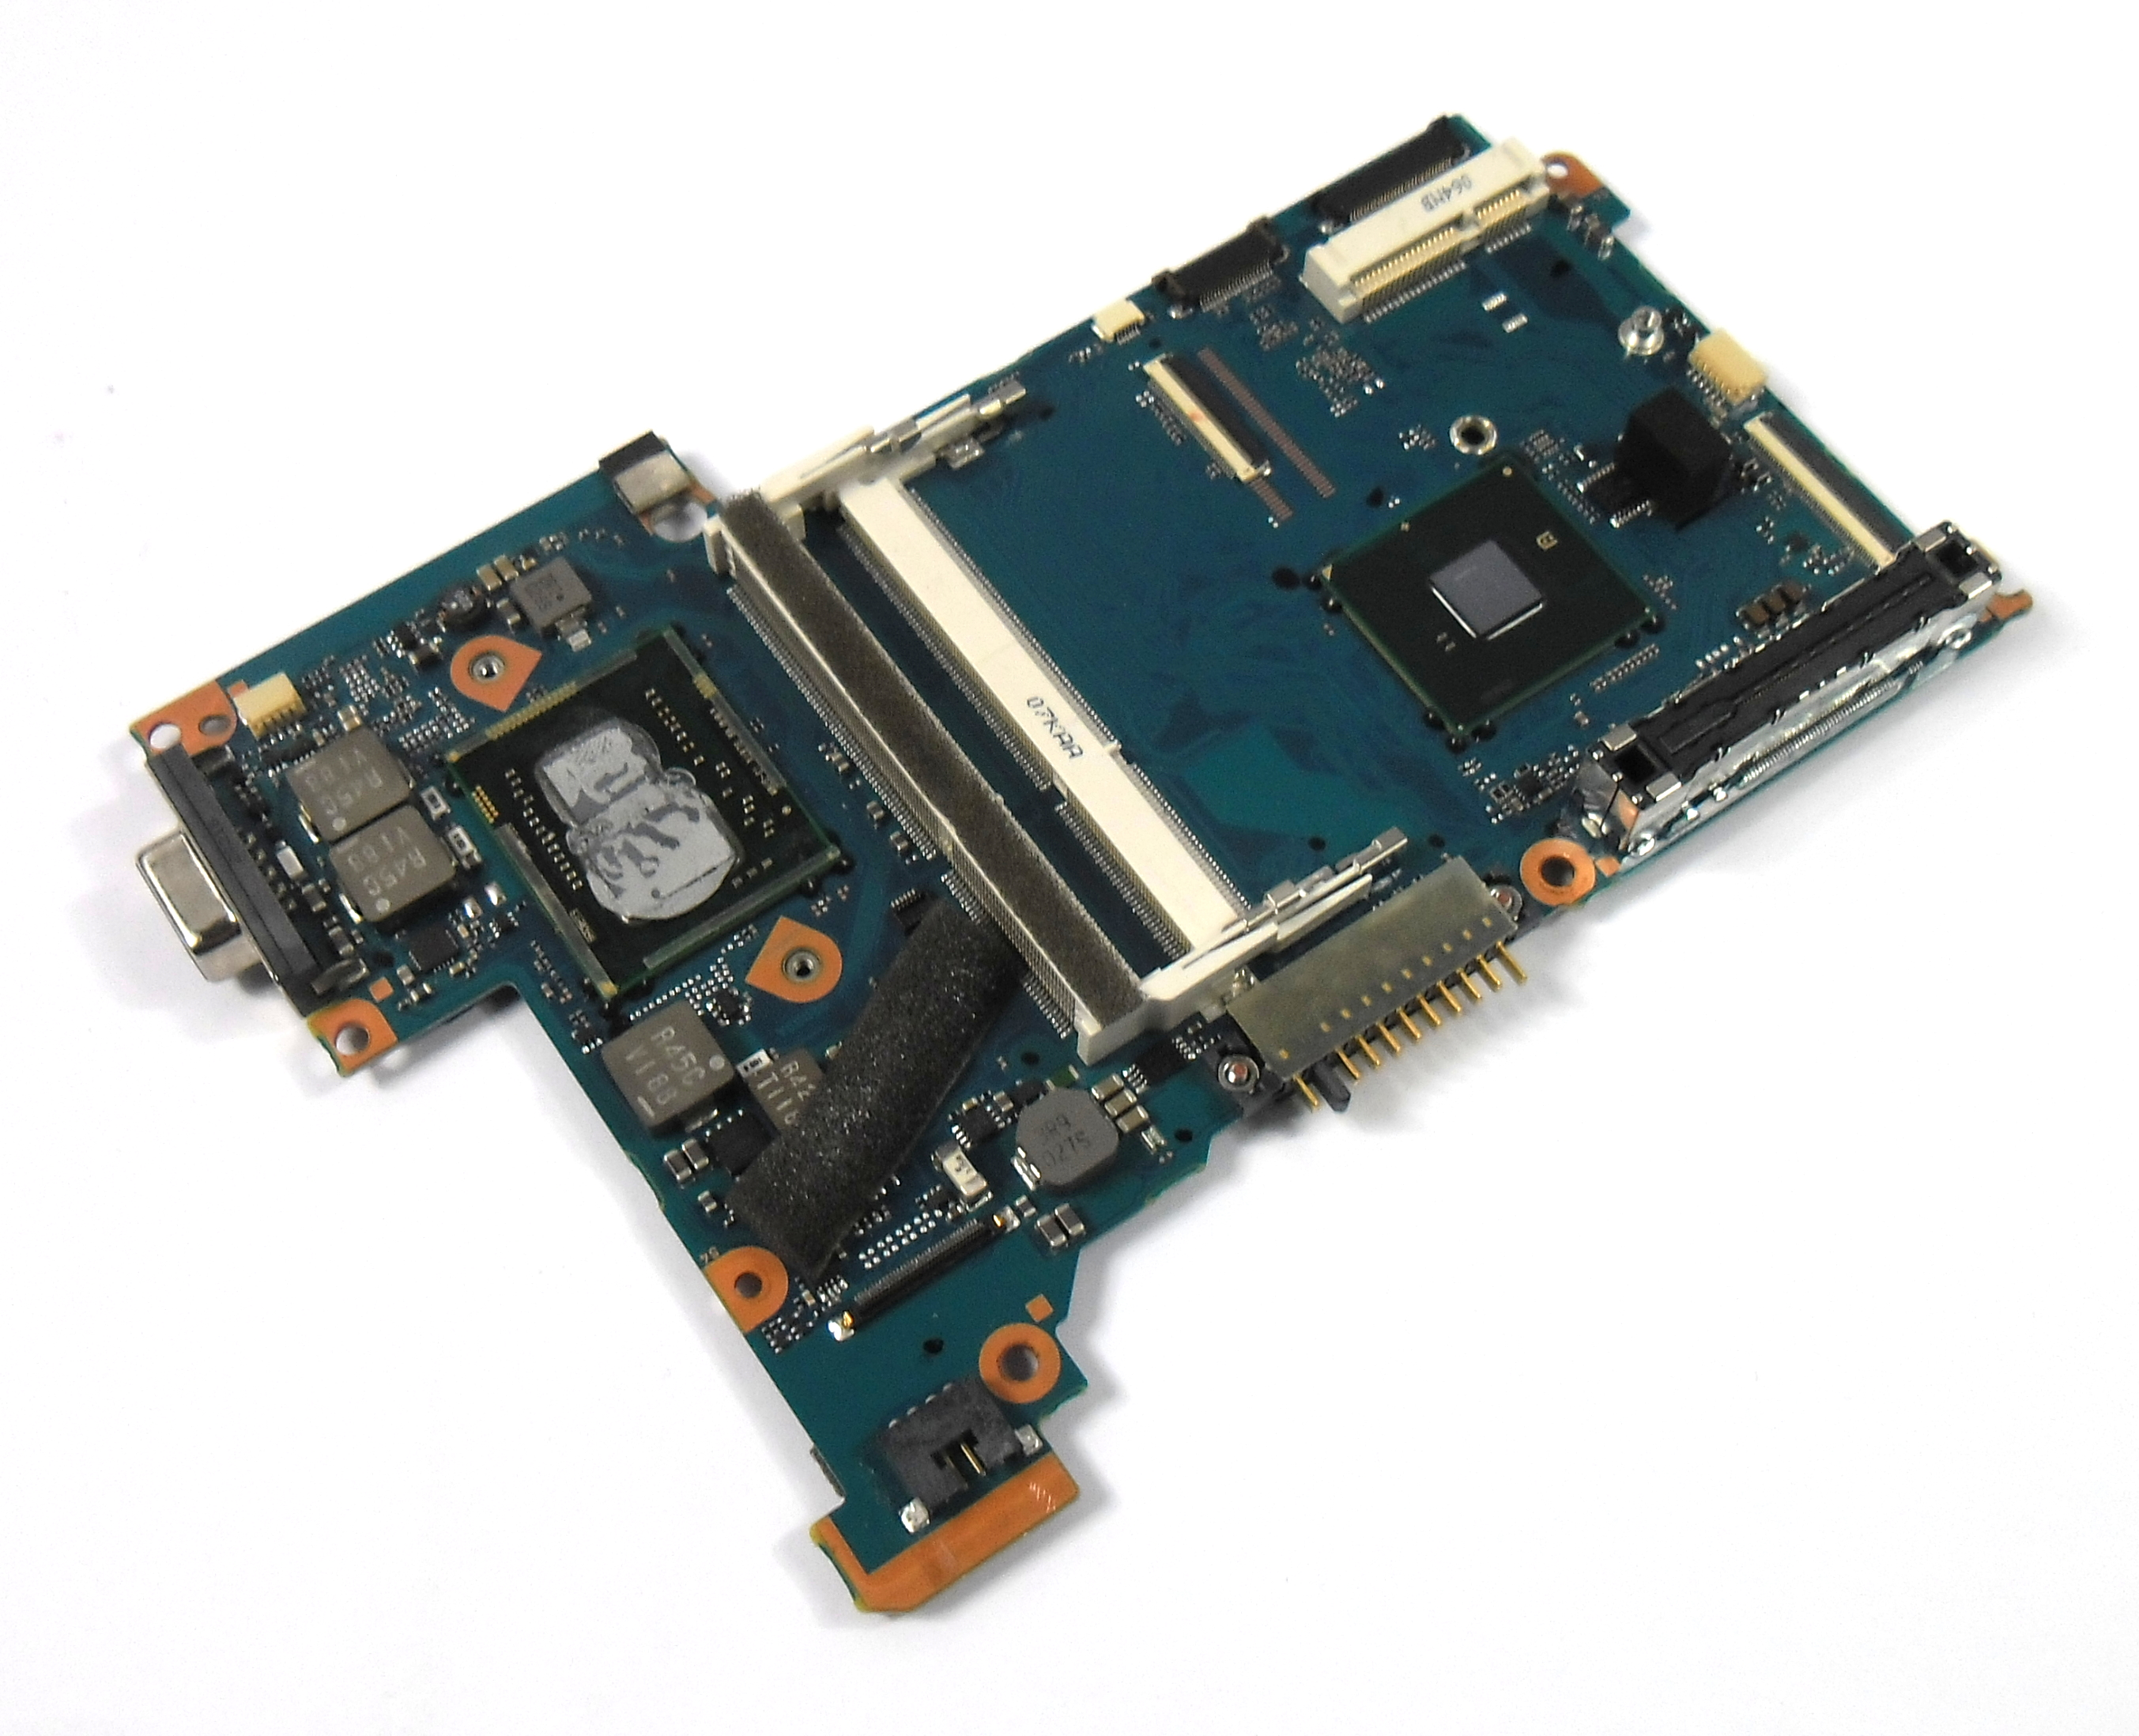 Toshiba FULSY4 Portege R700 Laptop Motherboard with Intel i5-560M CPU